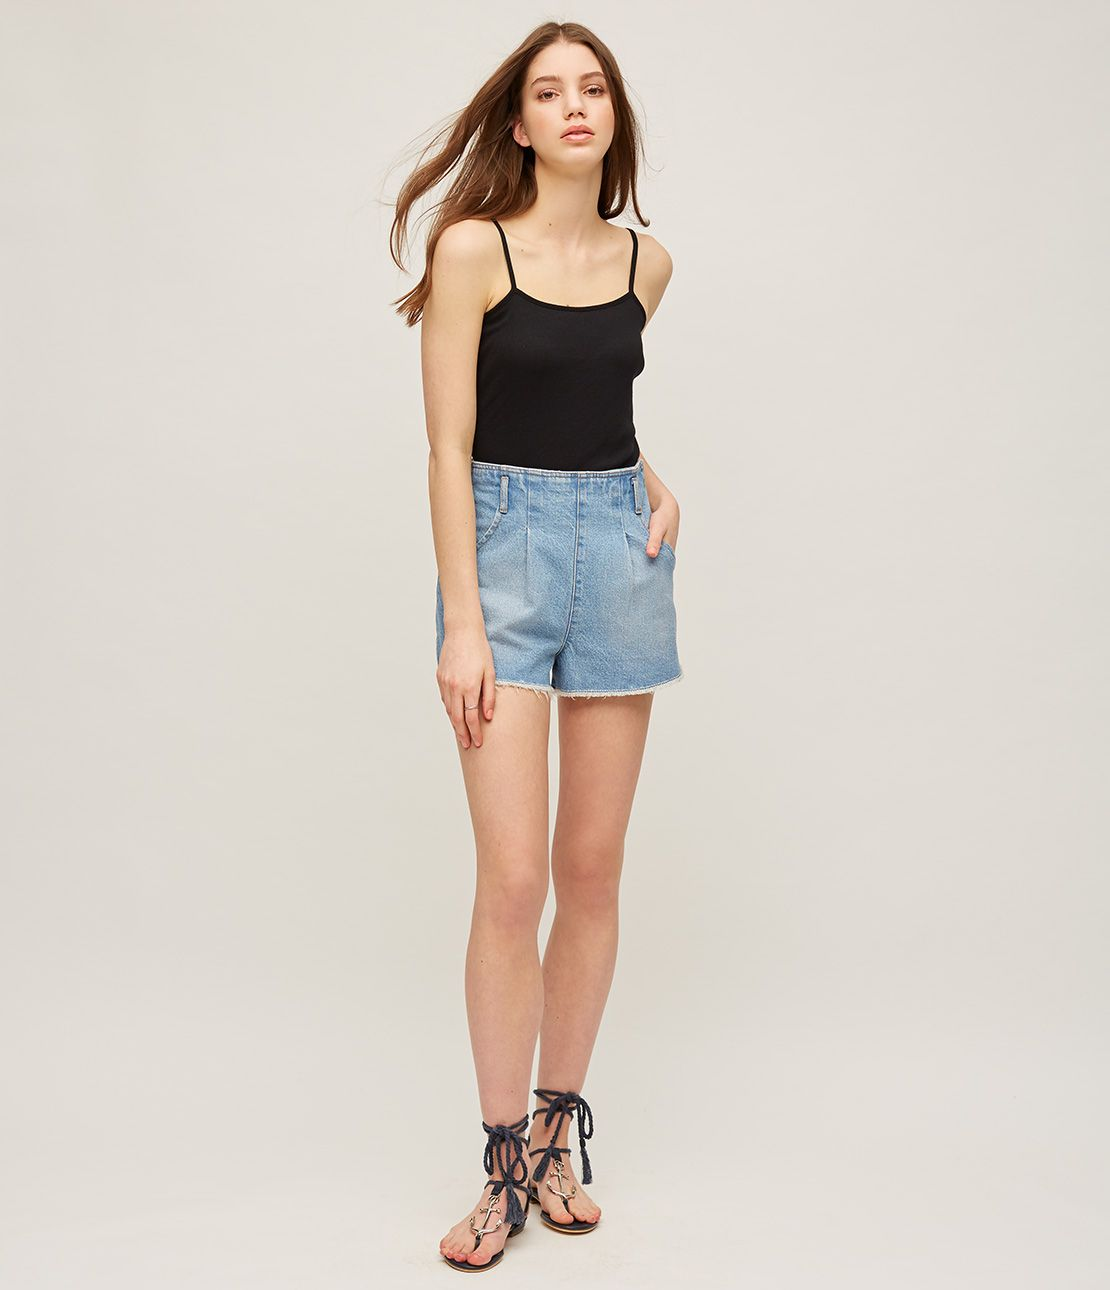 West tuck short denim